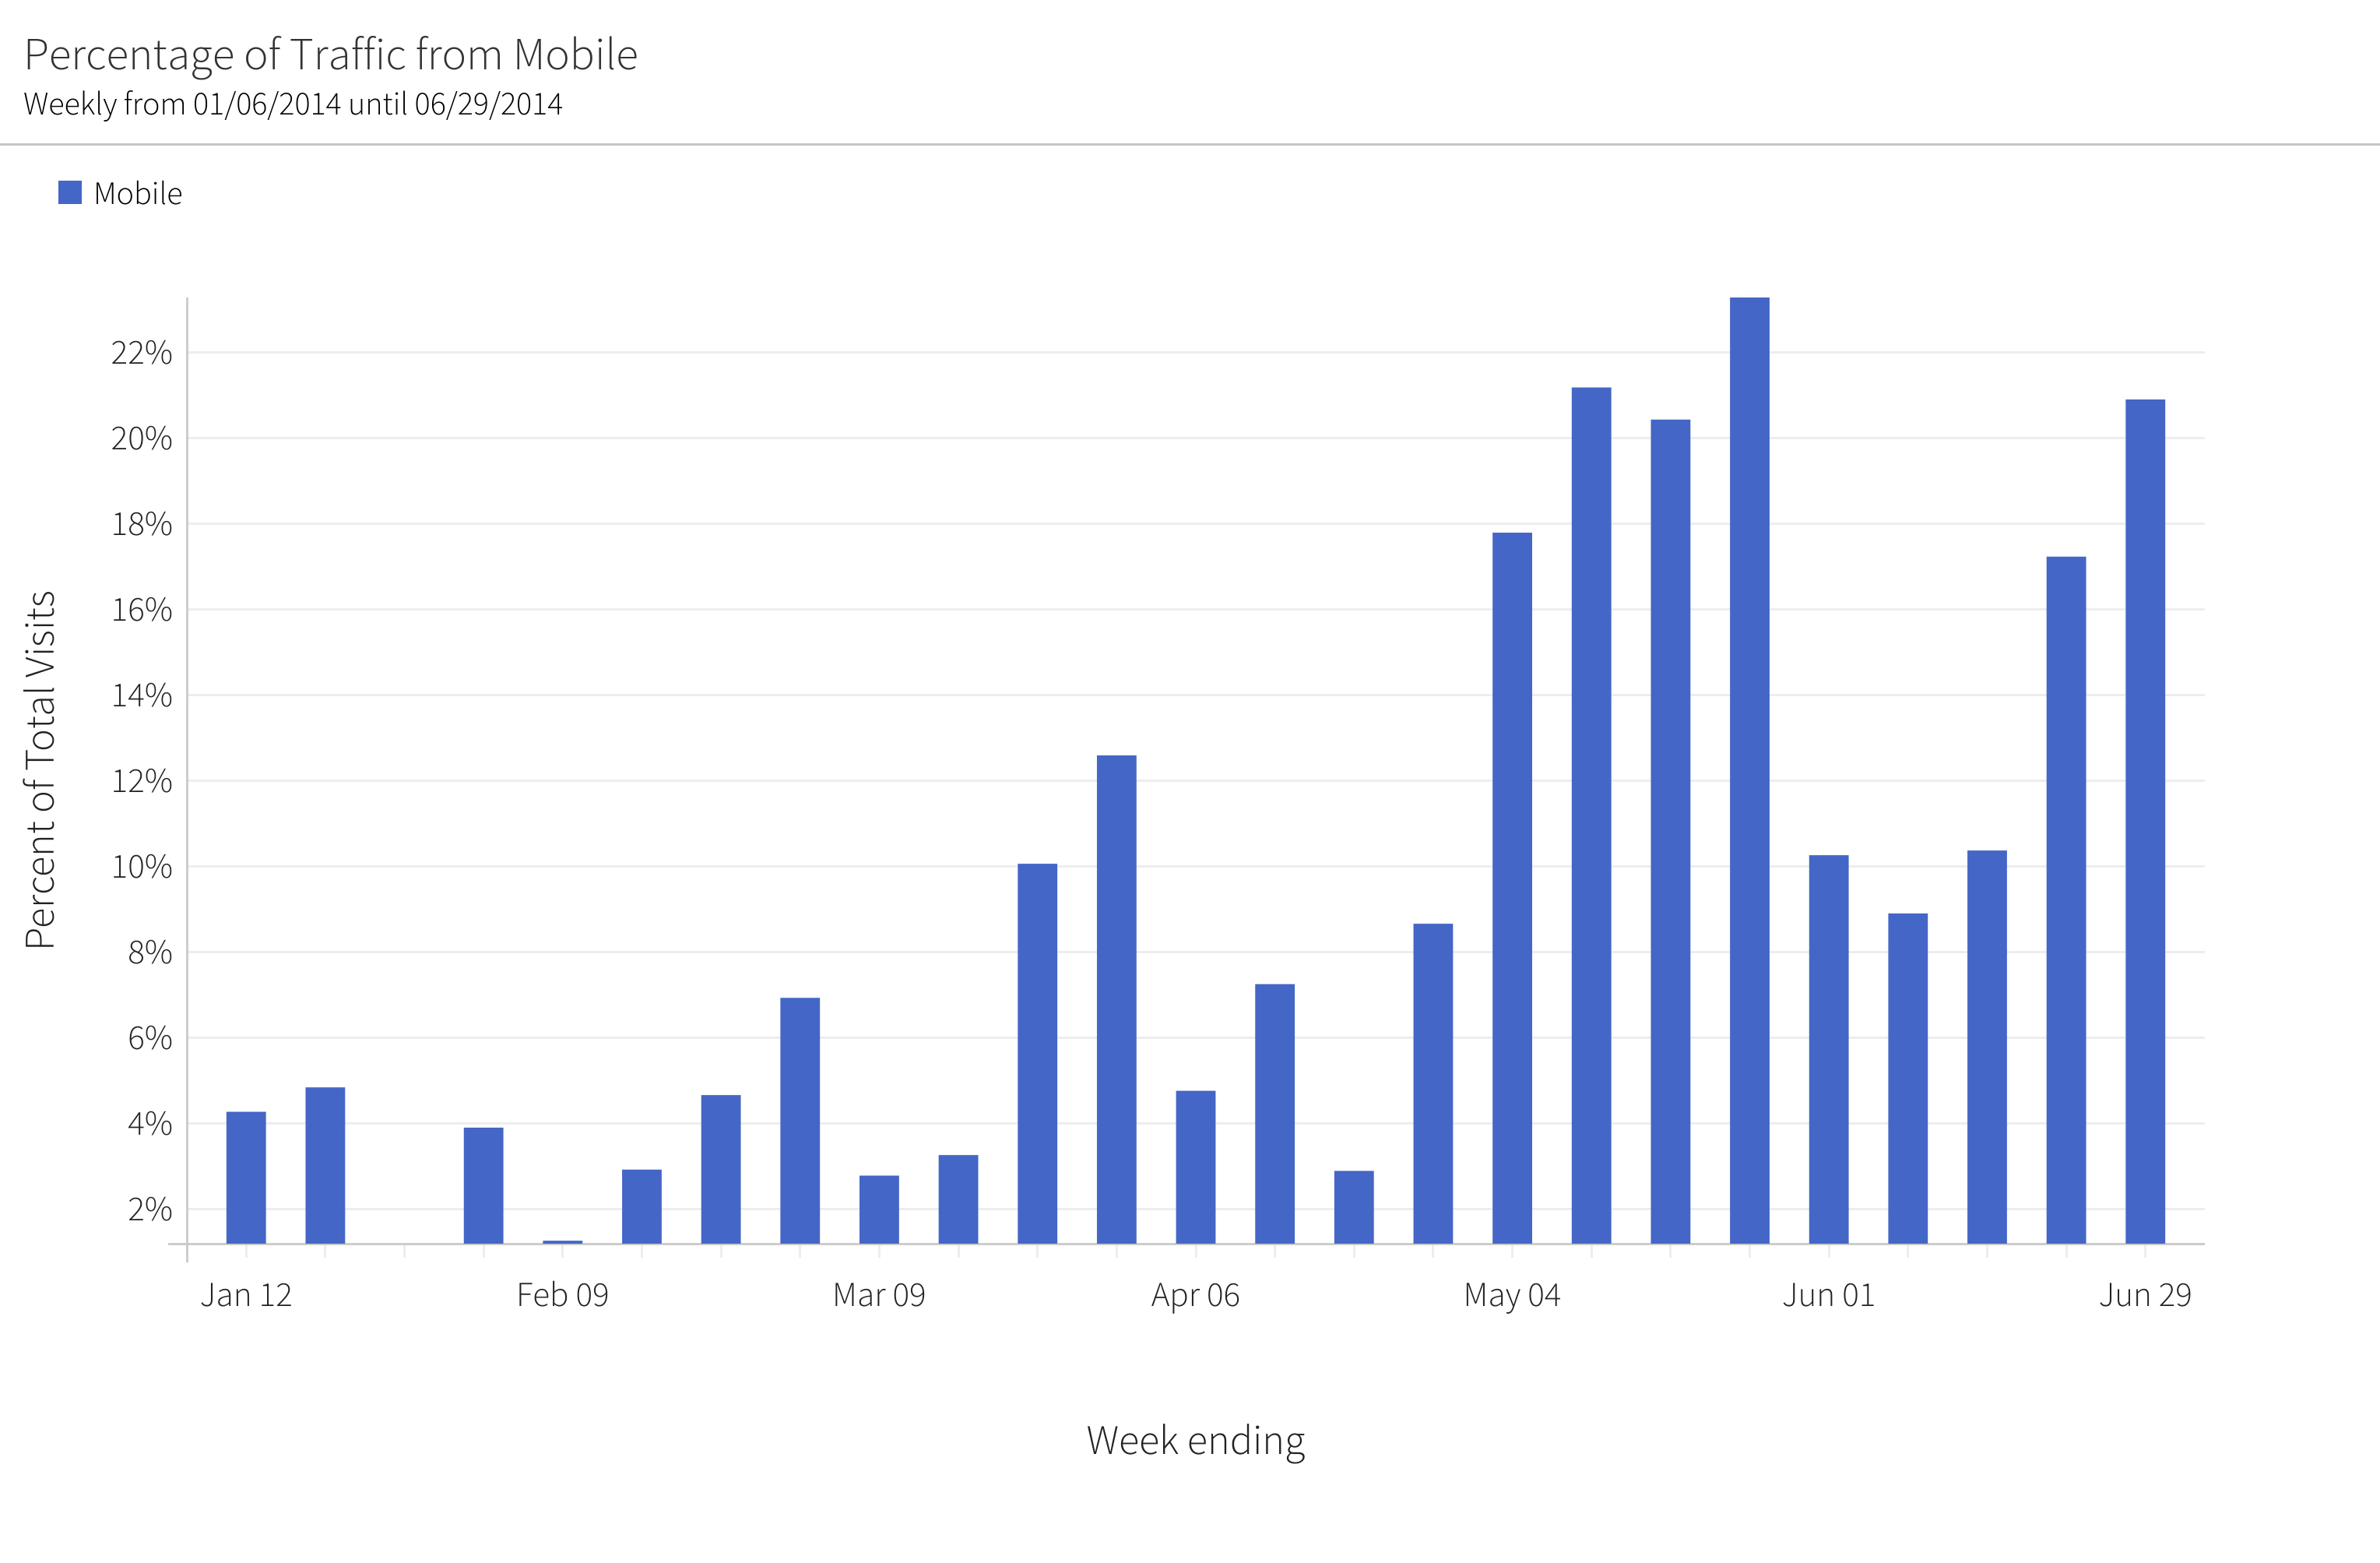 megalytic chart showing percentage of traffic from mobile over time